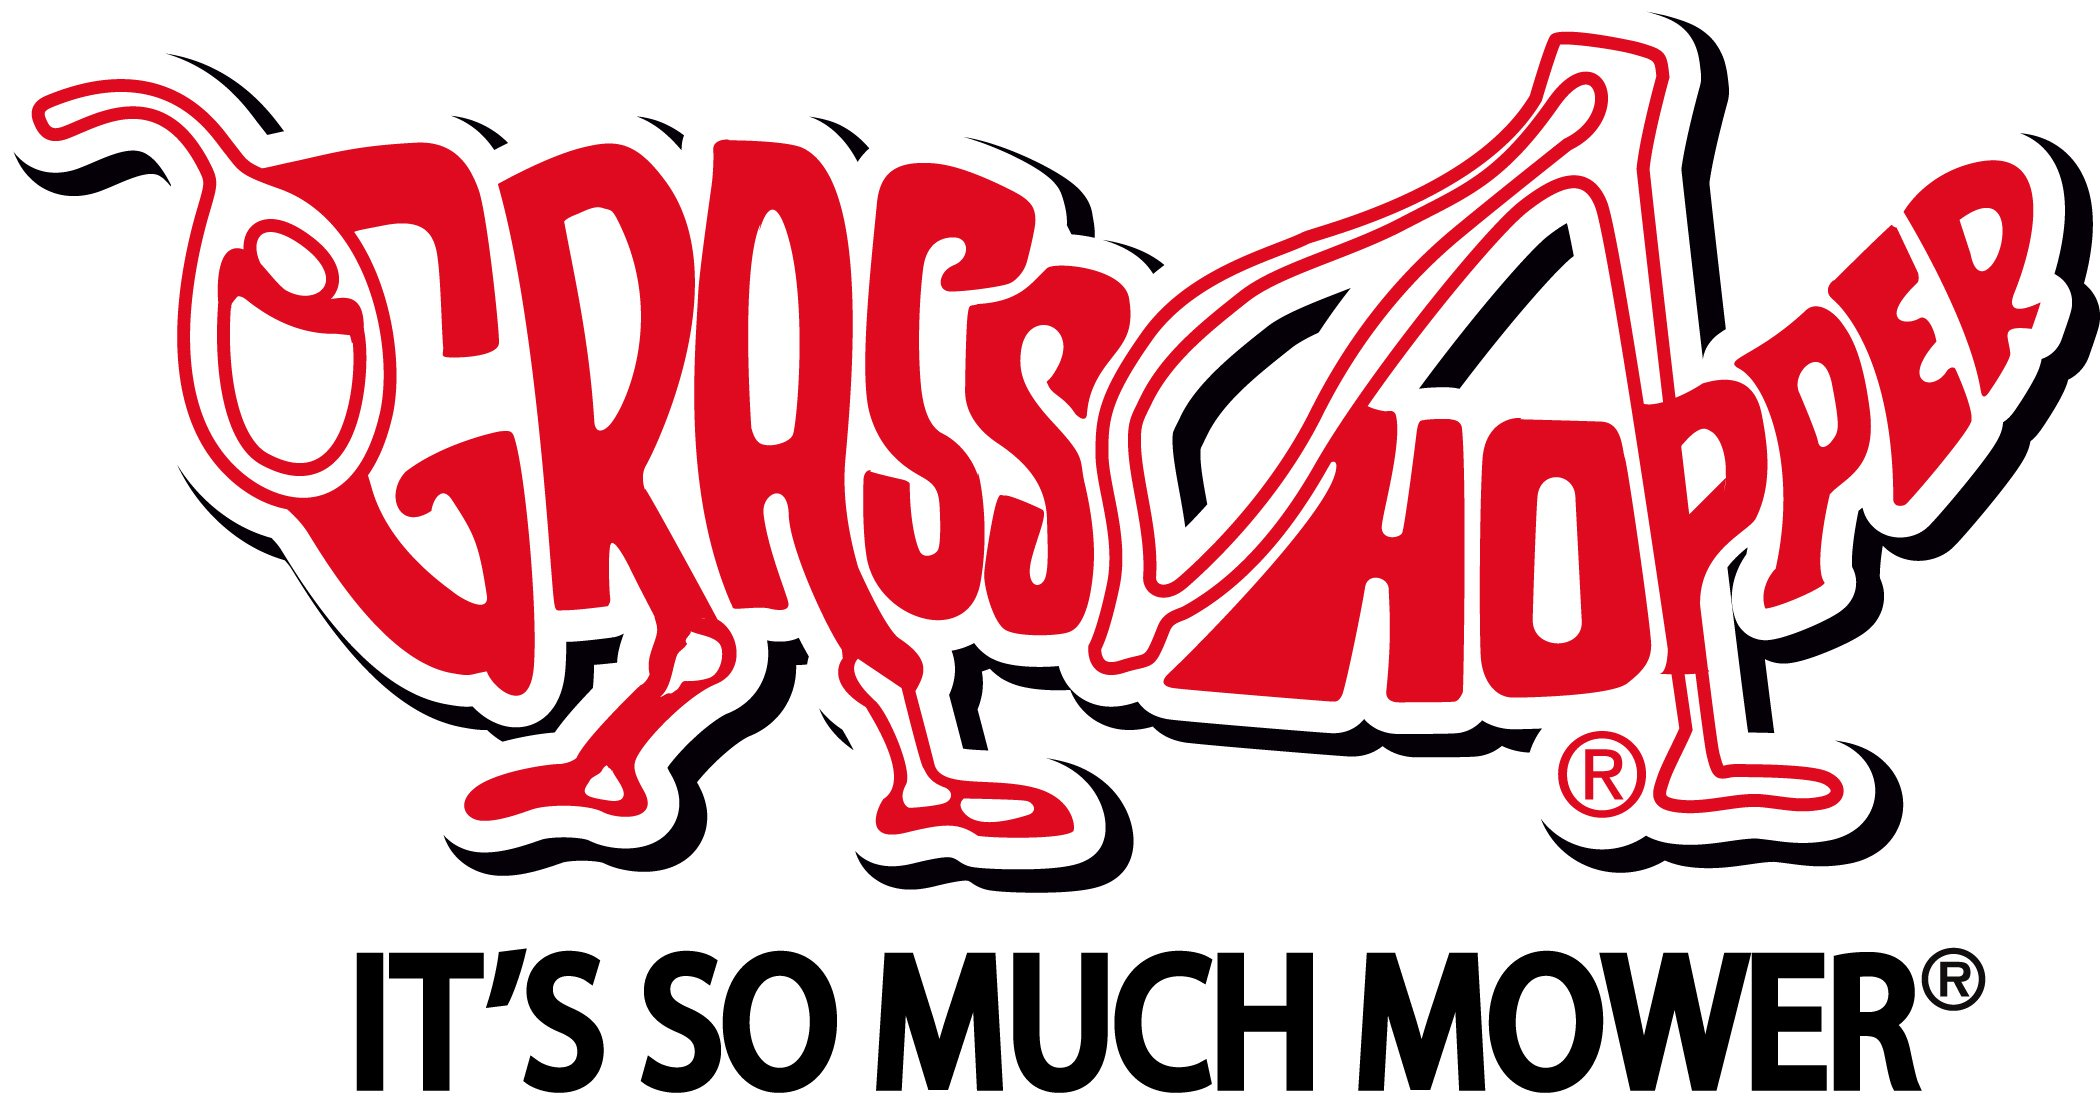 Grasshopper mowers sales and service